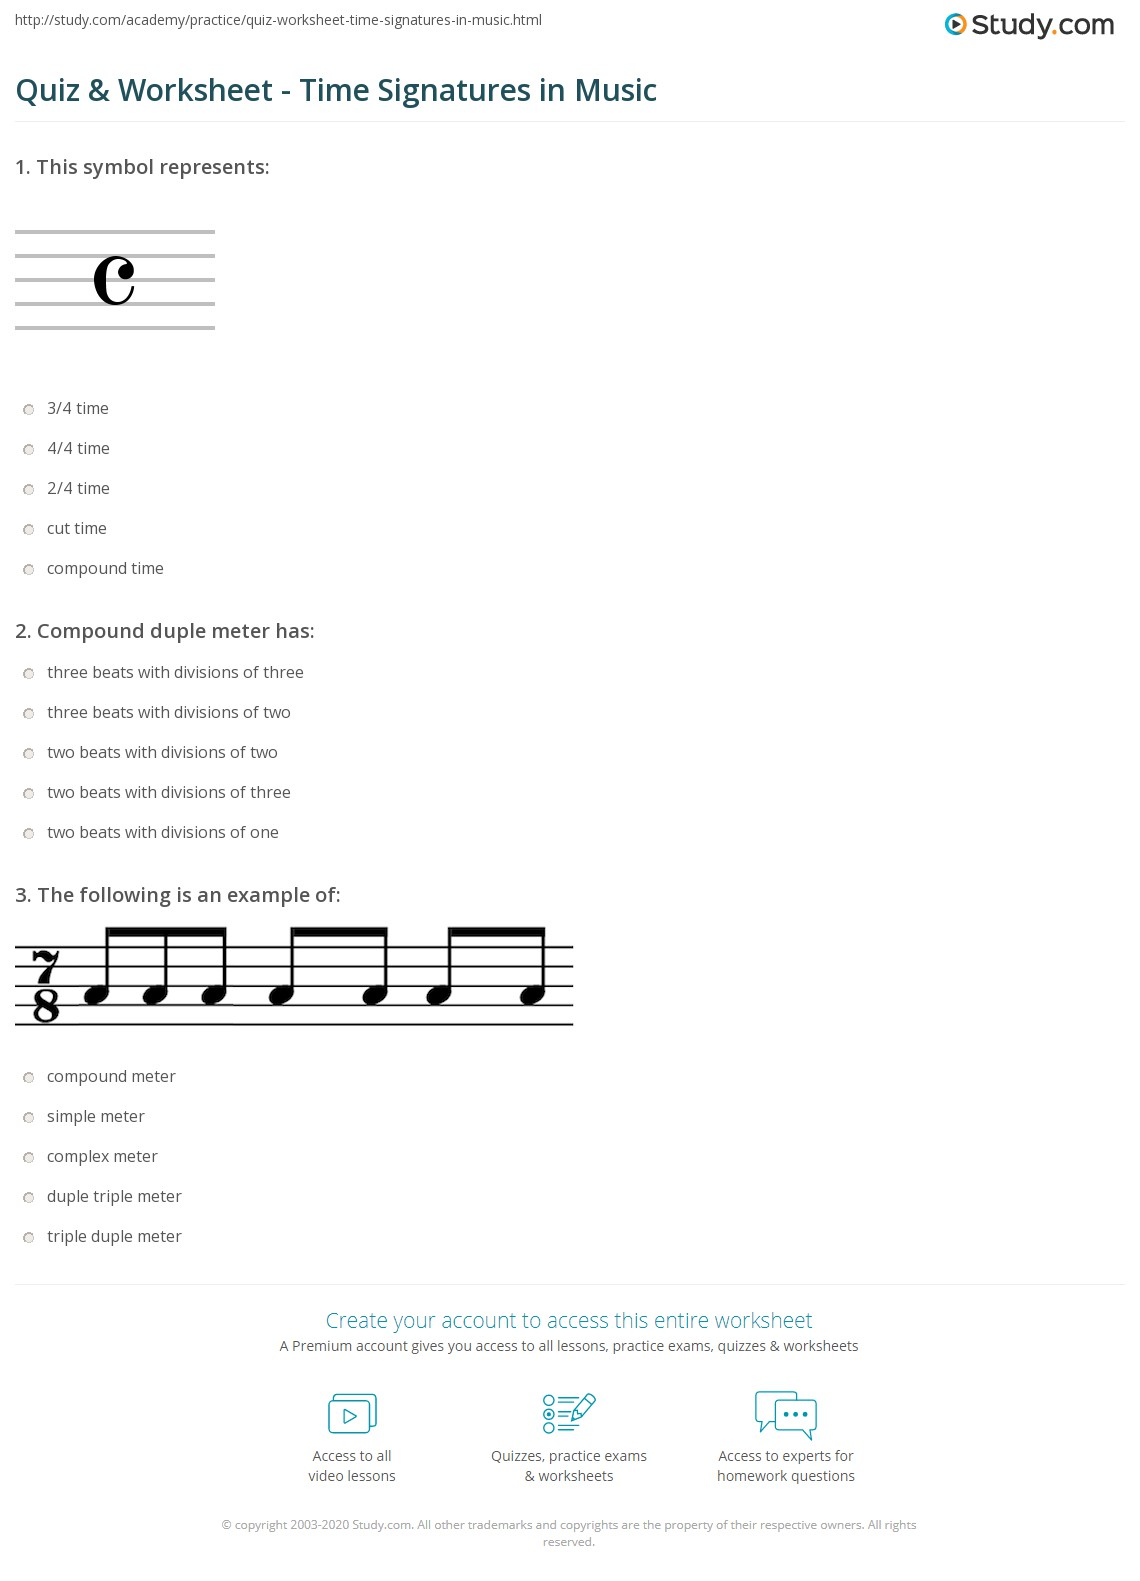 Worksheets Time Signature Worksheet quiz worksheet time signatures in music study com print signature definition and examples worksheet